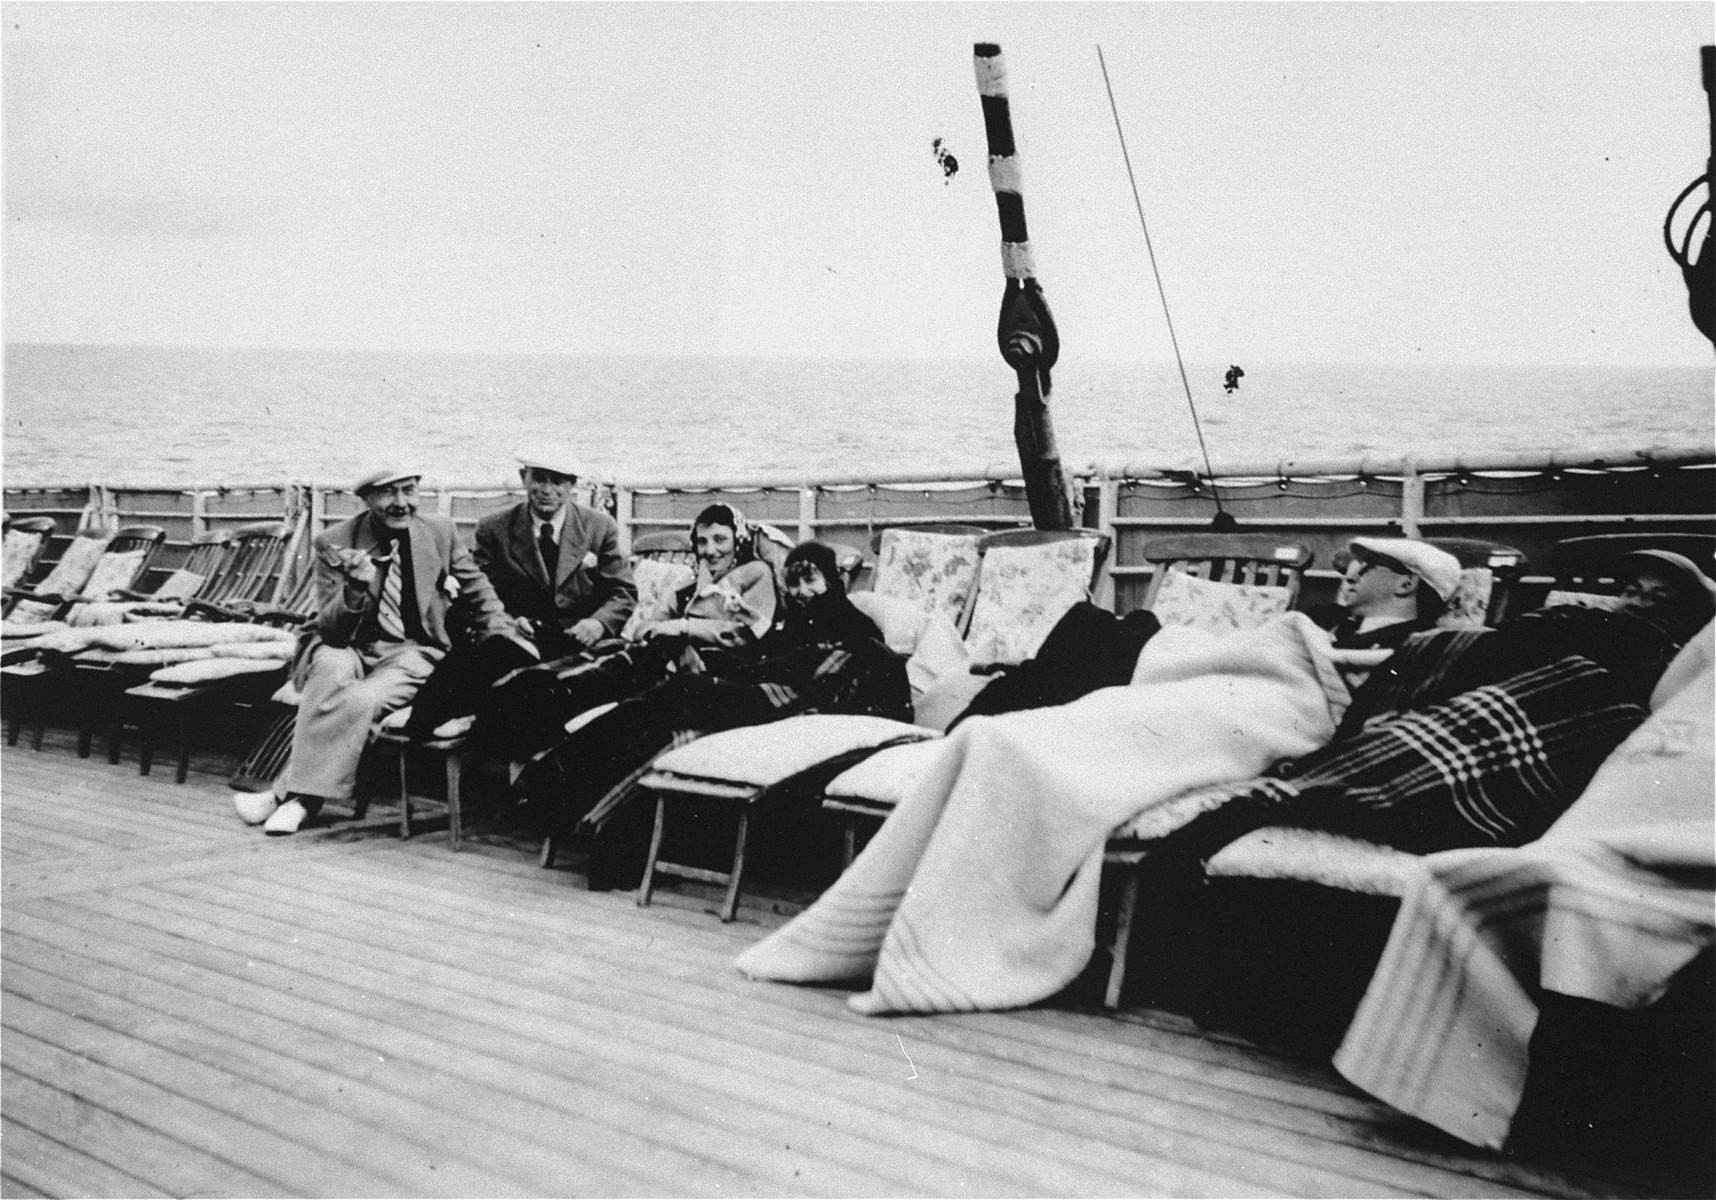 Passengers lounge on the deck of the refugee ship MS St. Louis.     From a photo album belonging to St. Louis passenger Moritz Schoenberger.